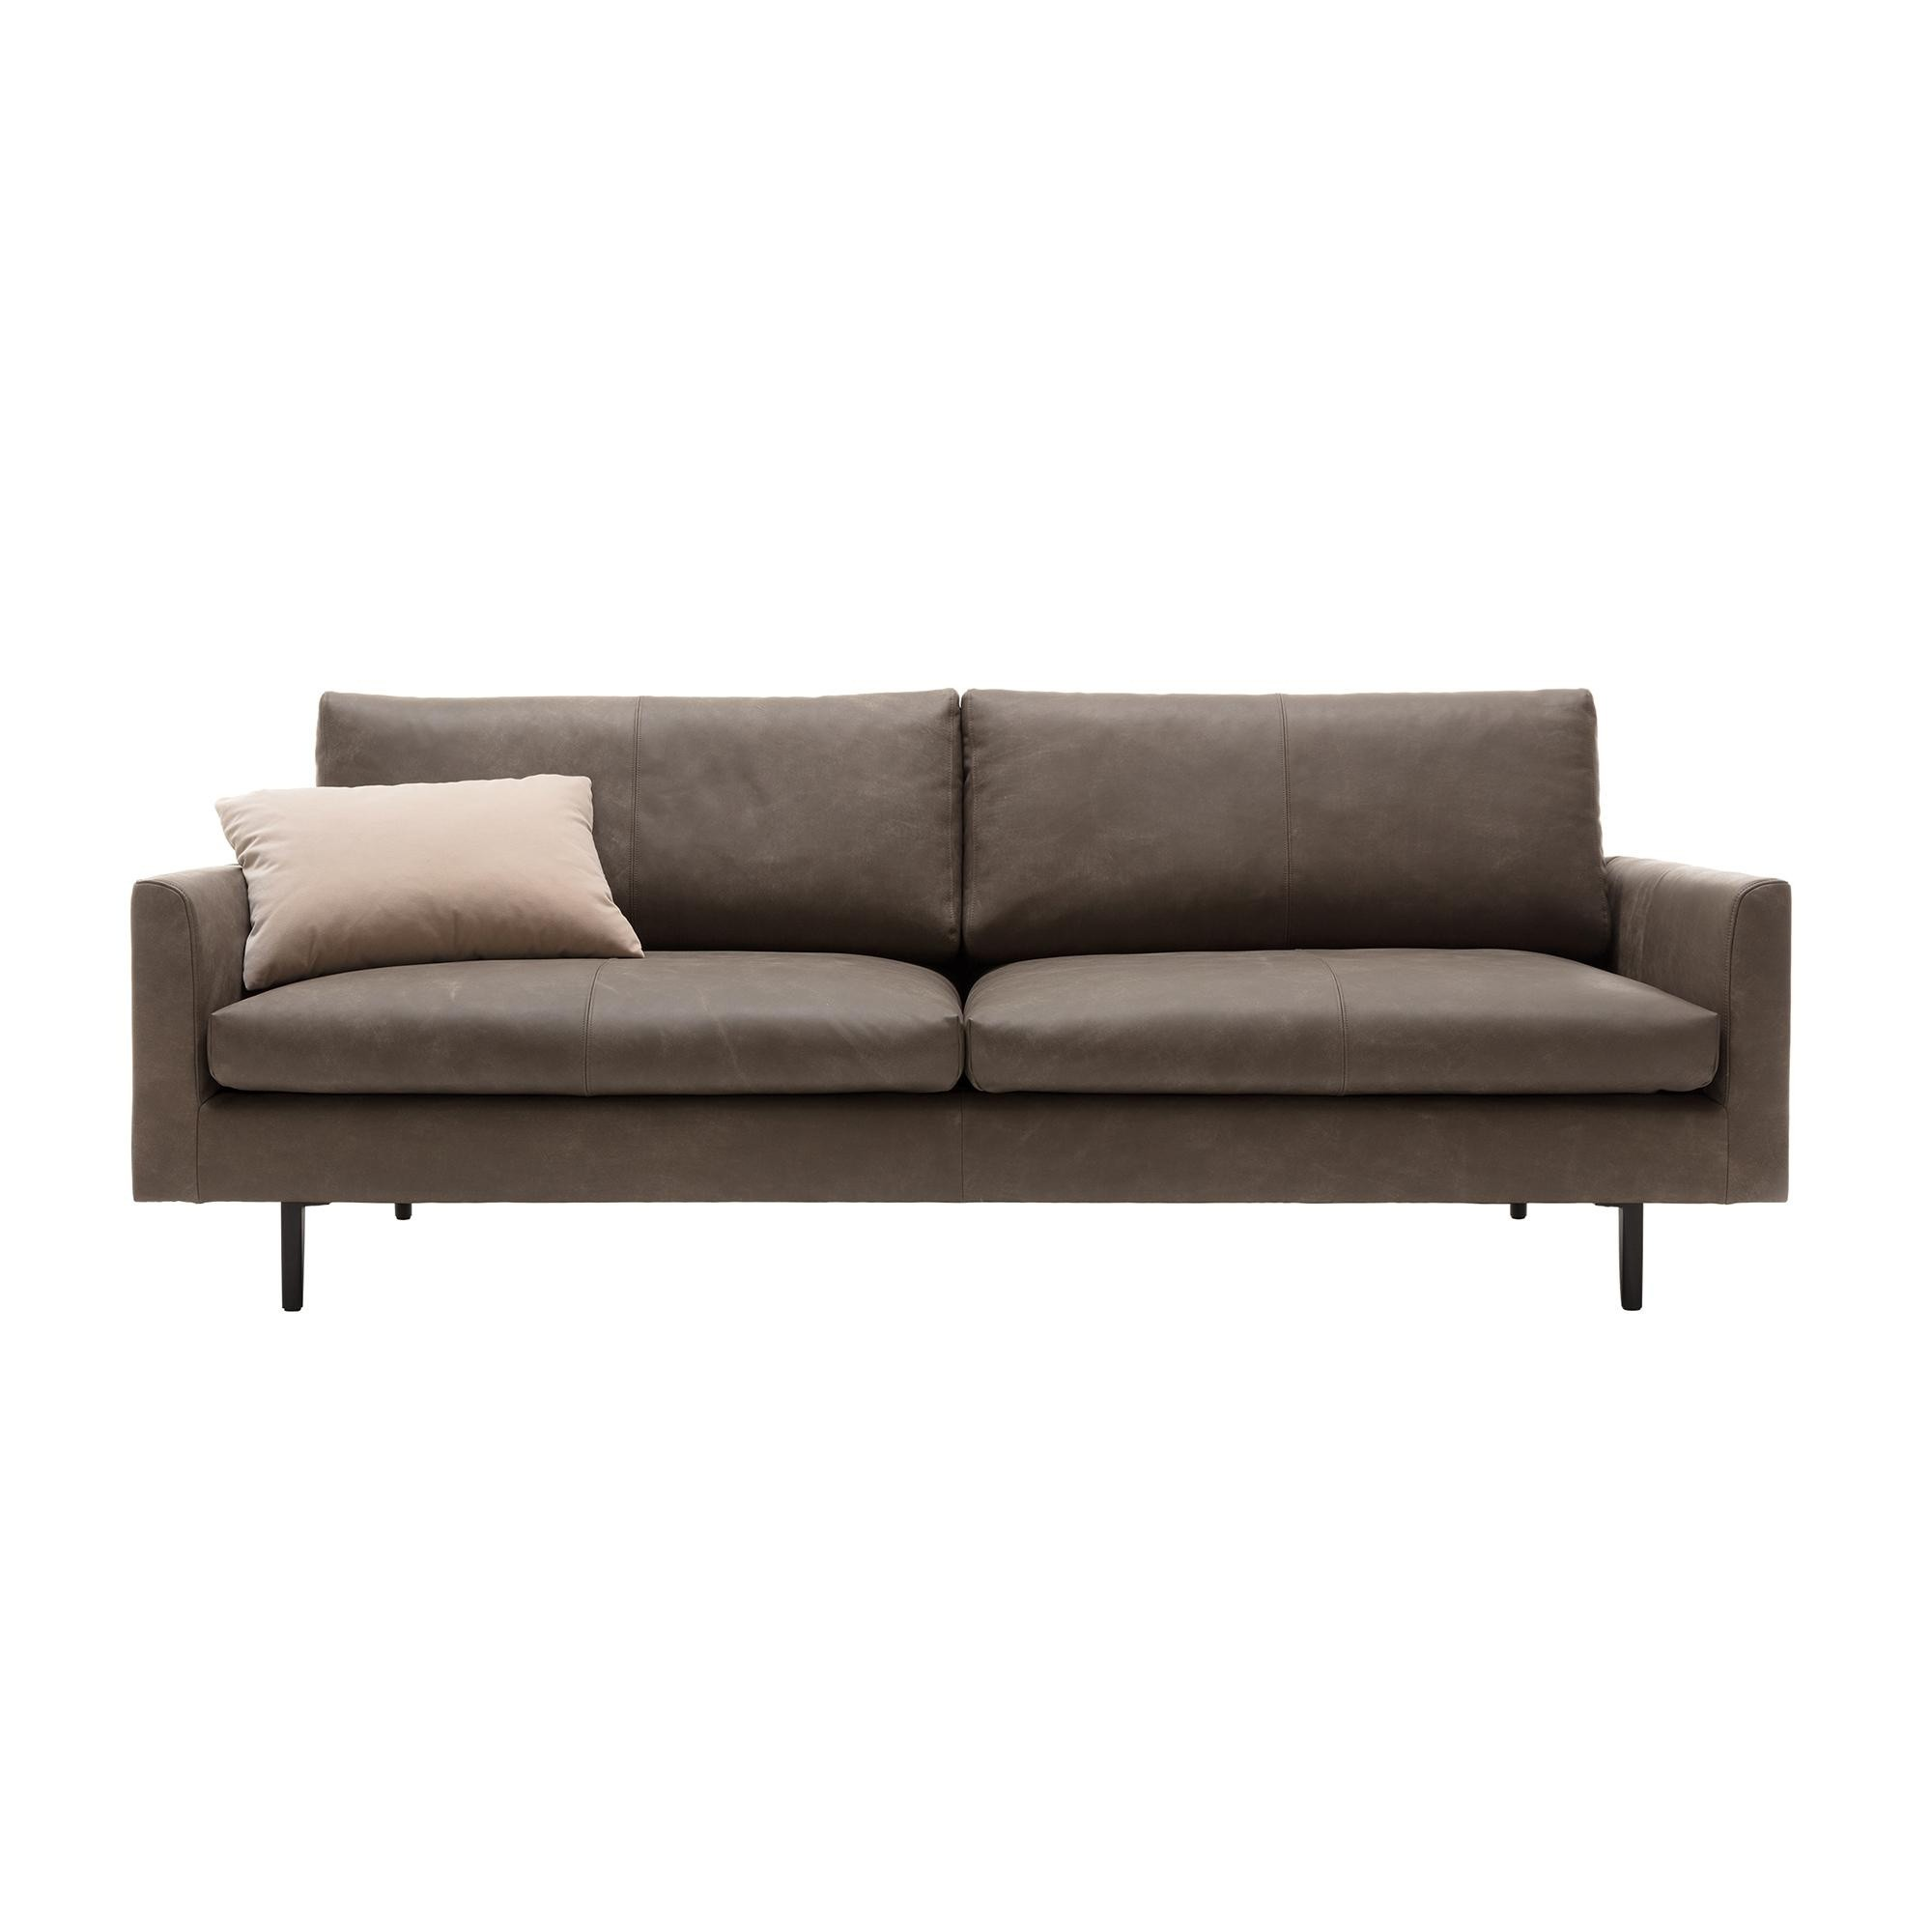 Freistil Sofa Freistil Rolf Benz Freistil 134 2-seater Sofa | Ambientedirect